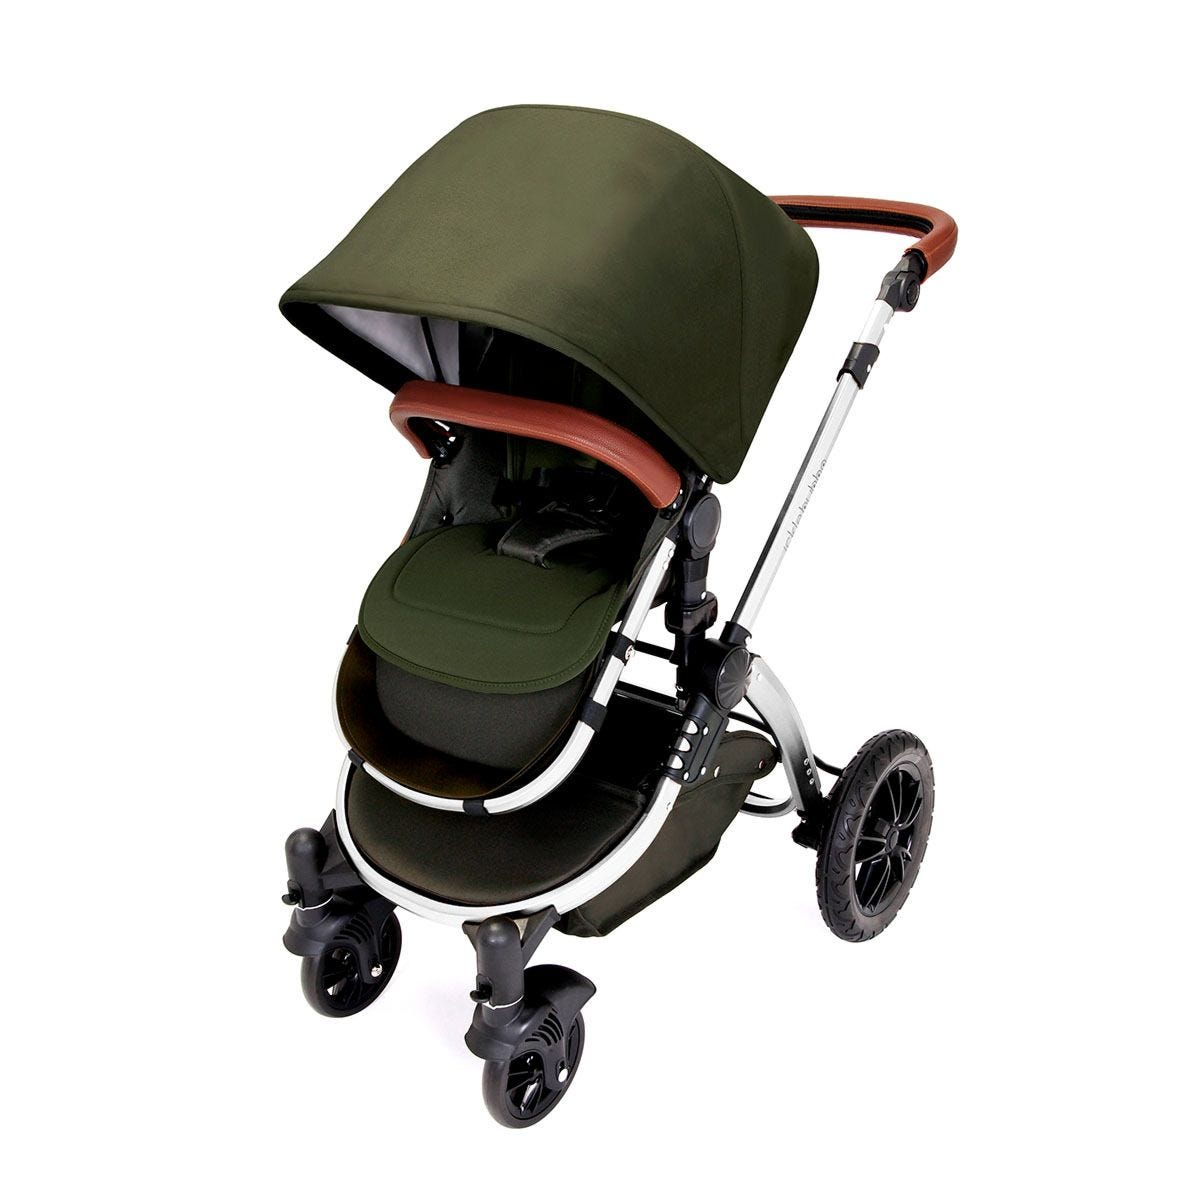 Ickle Bubba Stomp V4 All in One Travel System with Isofix Base - Woodland on Chrome with Tan Handles